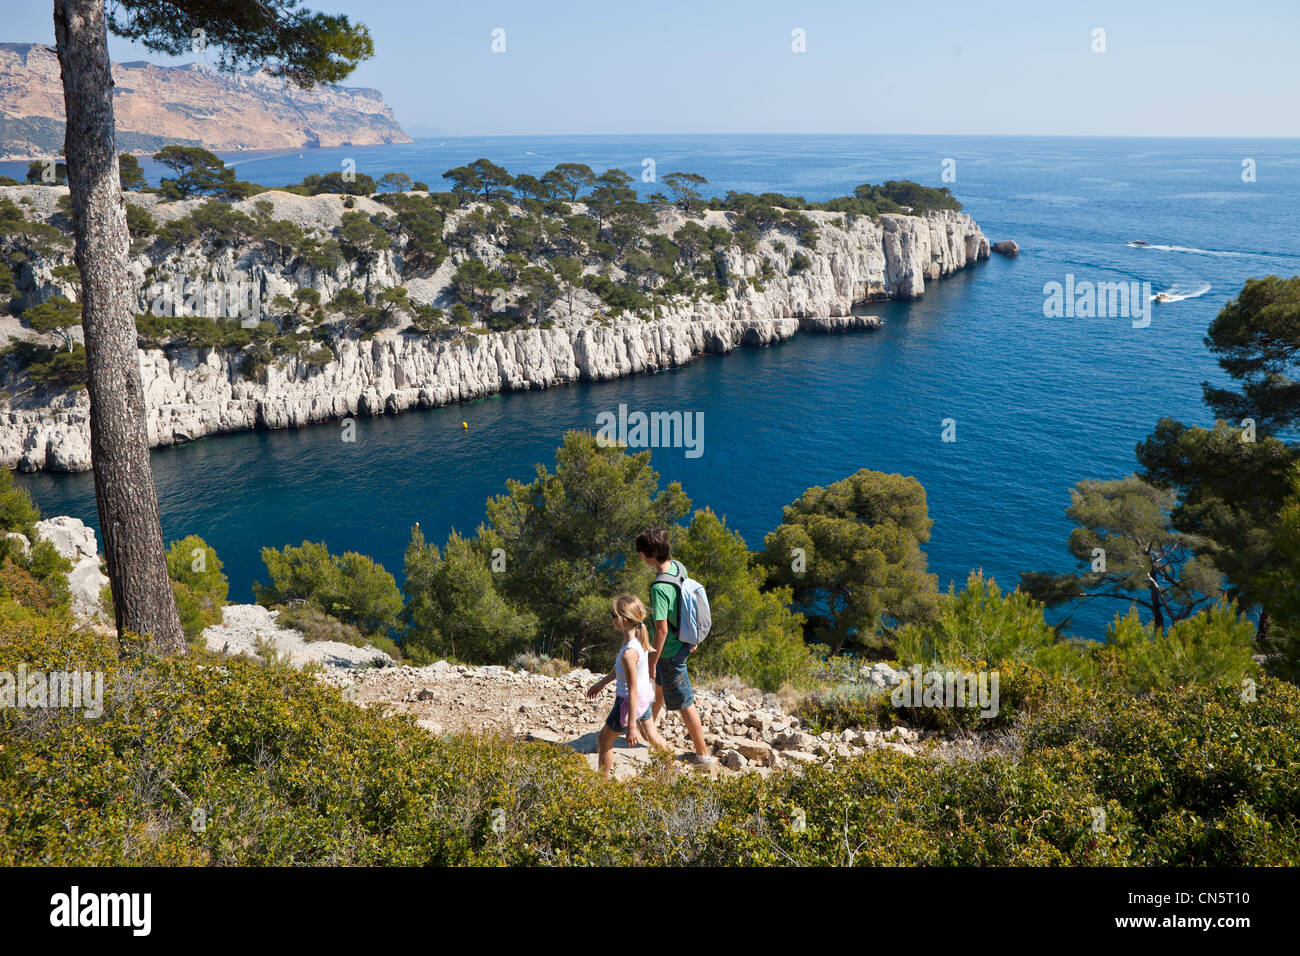 France, Bouches du Rhone, Cassis, the creek (Calanque) of Port Pin, children hiking Stock Photo